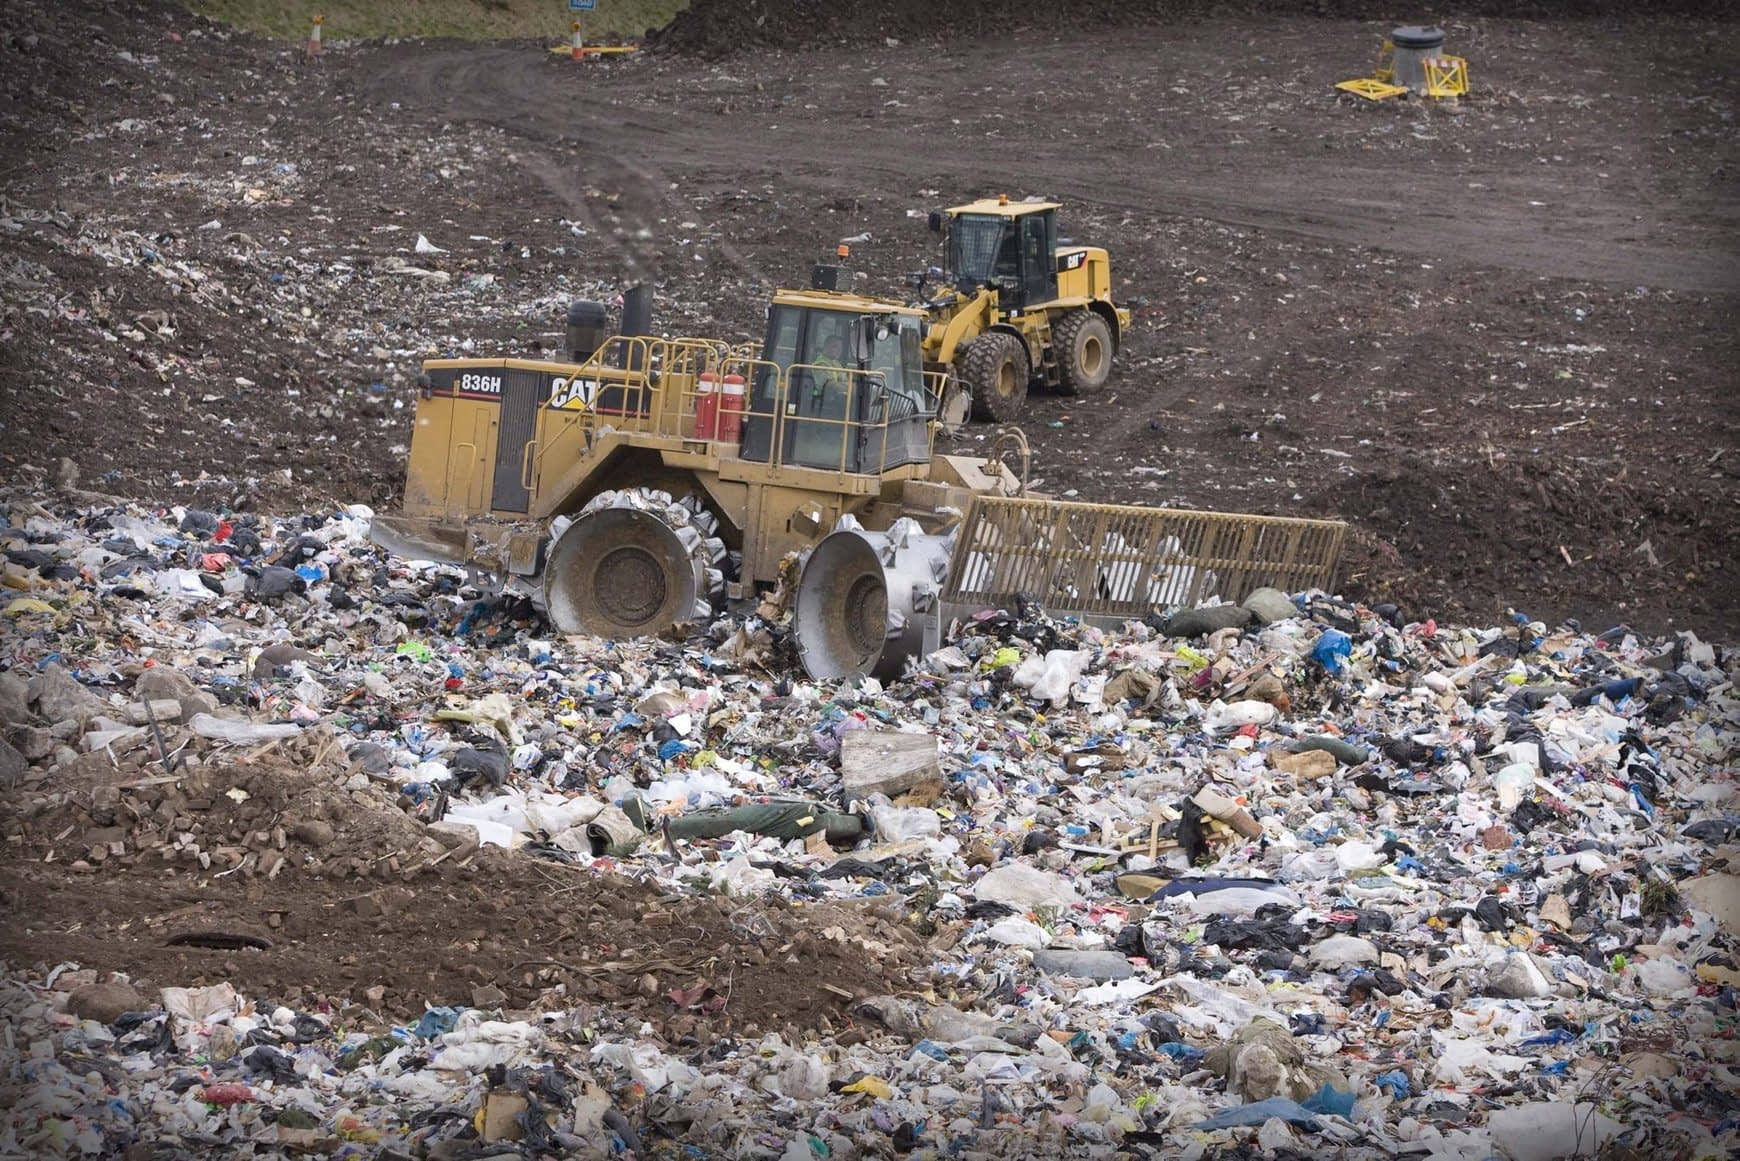 , Zero Waste Scotland to team up with construction industry, The Circular Economy